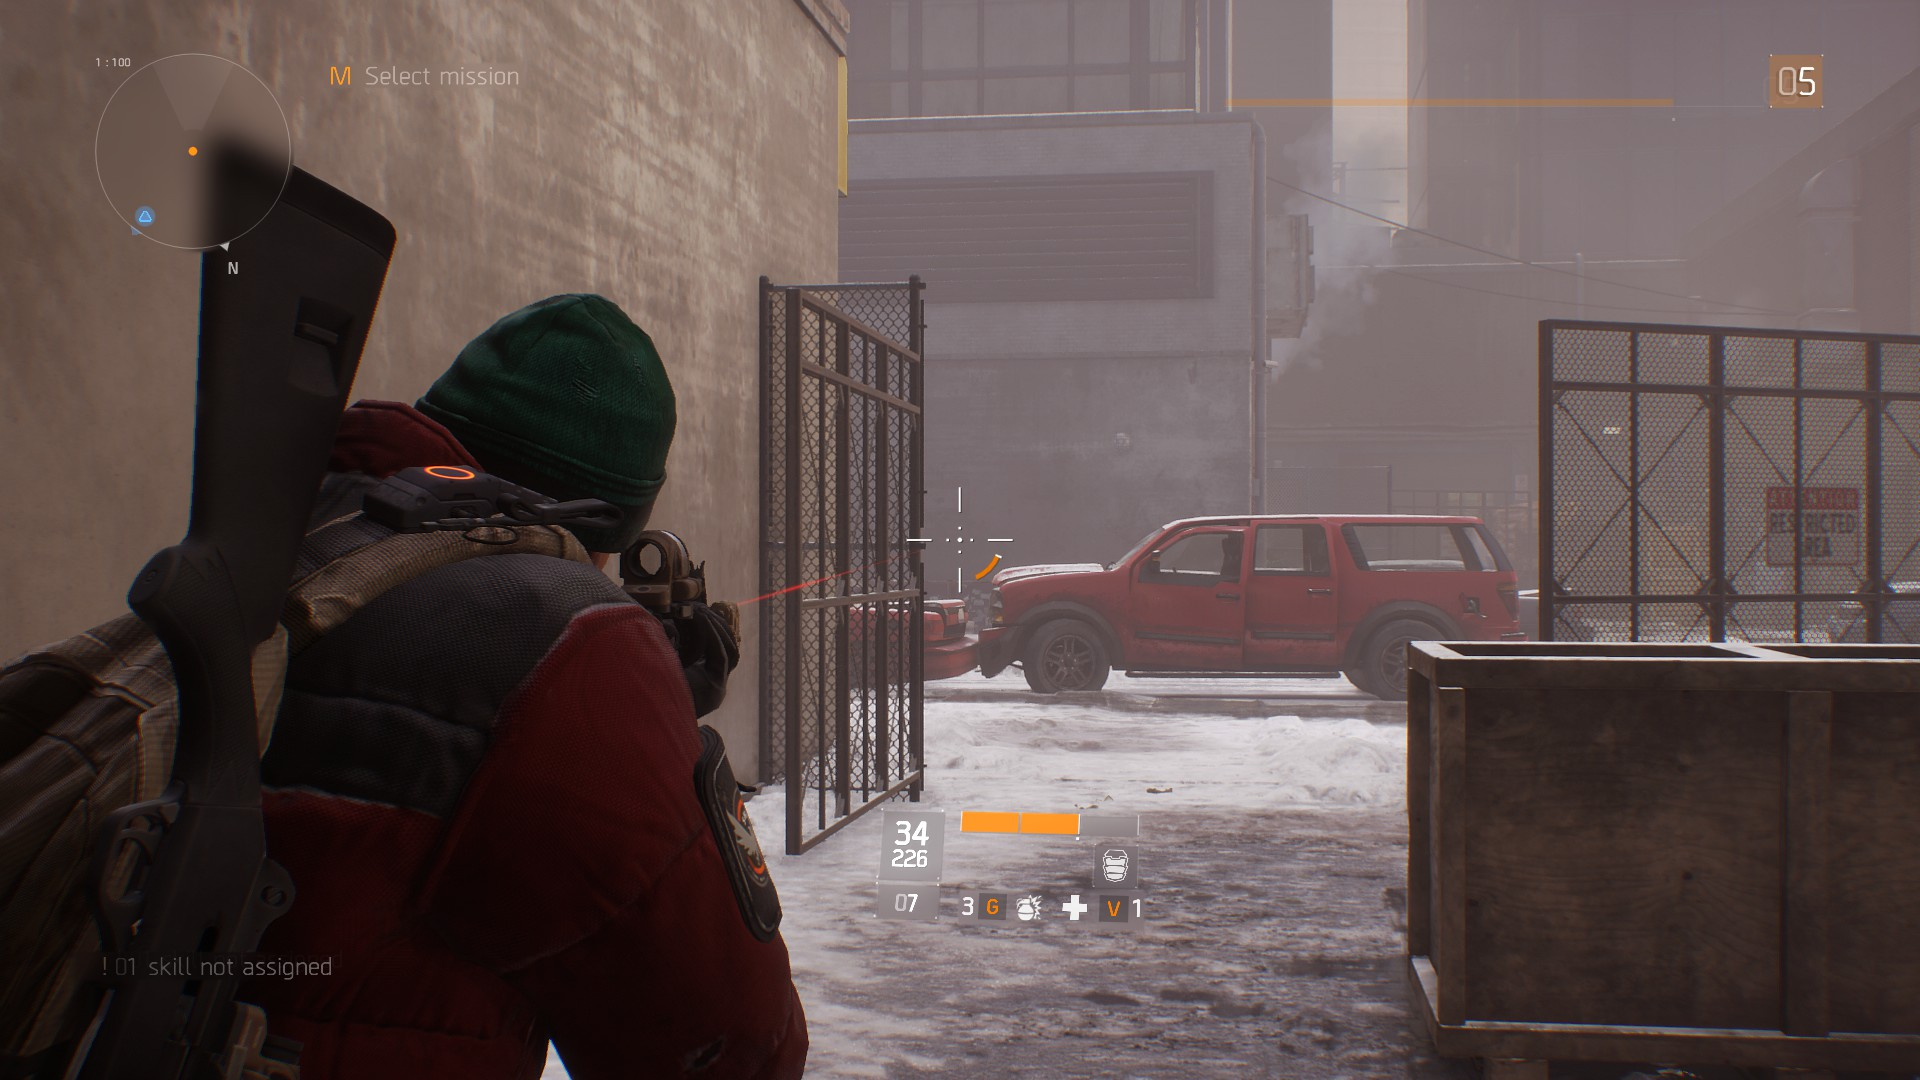 Tom Clancys The Division Gunplay